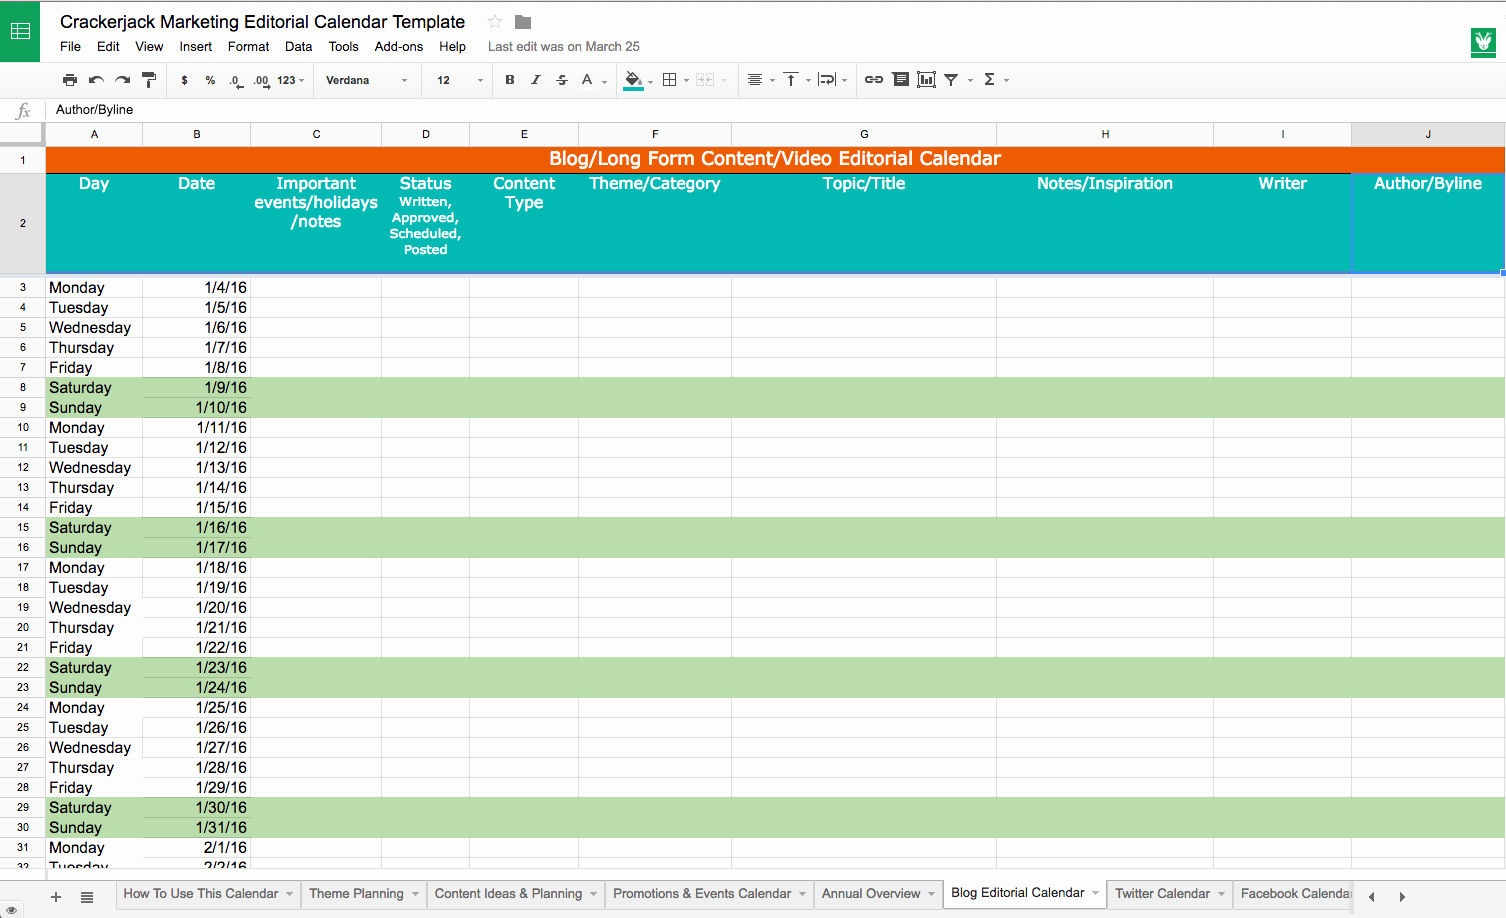 Editorial Calendar Template Google Docs Awesome Basics Of the social Media Editorial Calendar